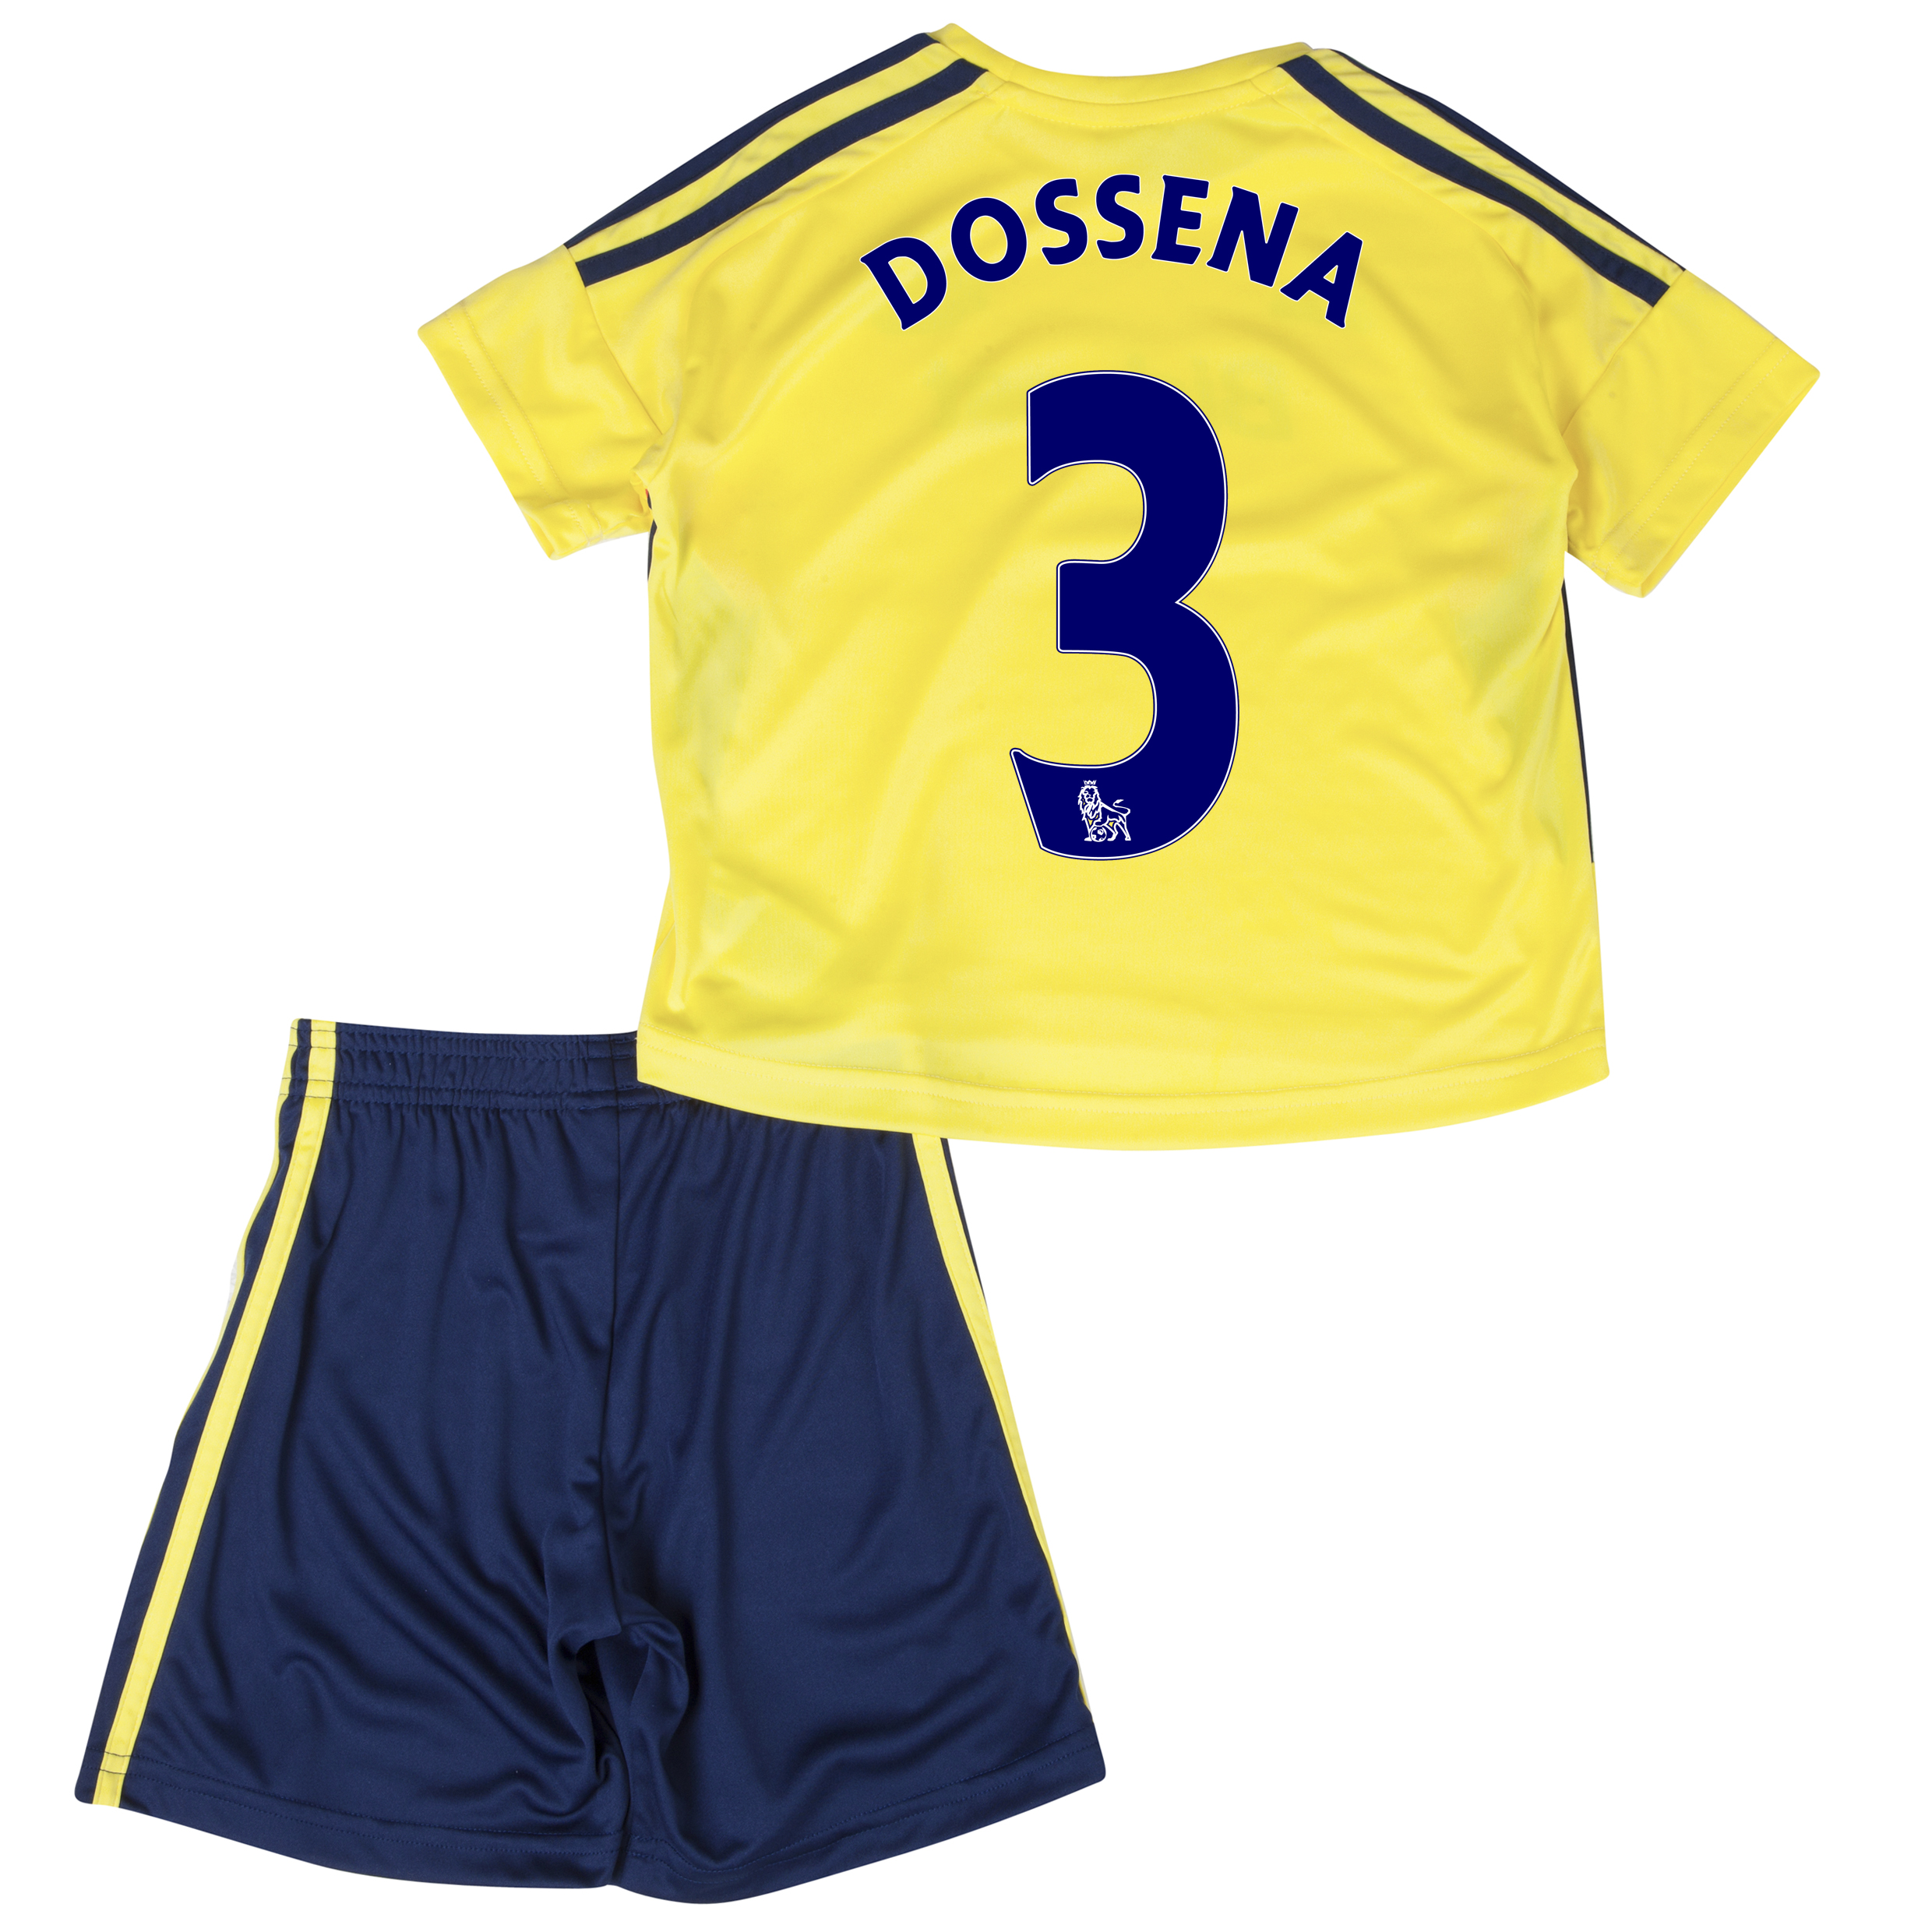 Sunderland Away Minikit 2013/14 - Infants with Dossena 3 printing